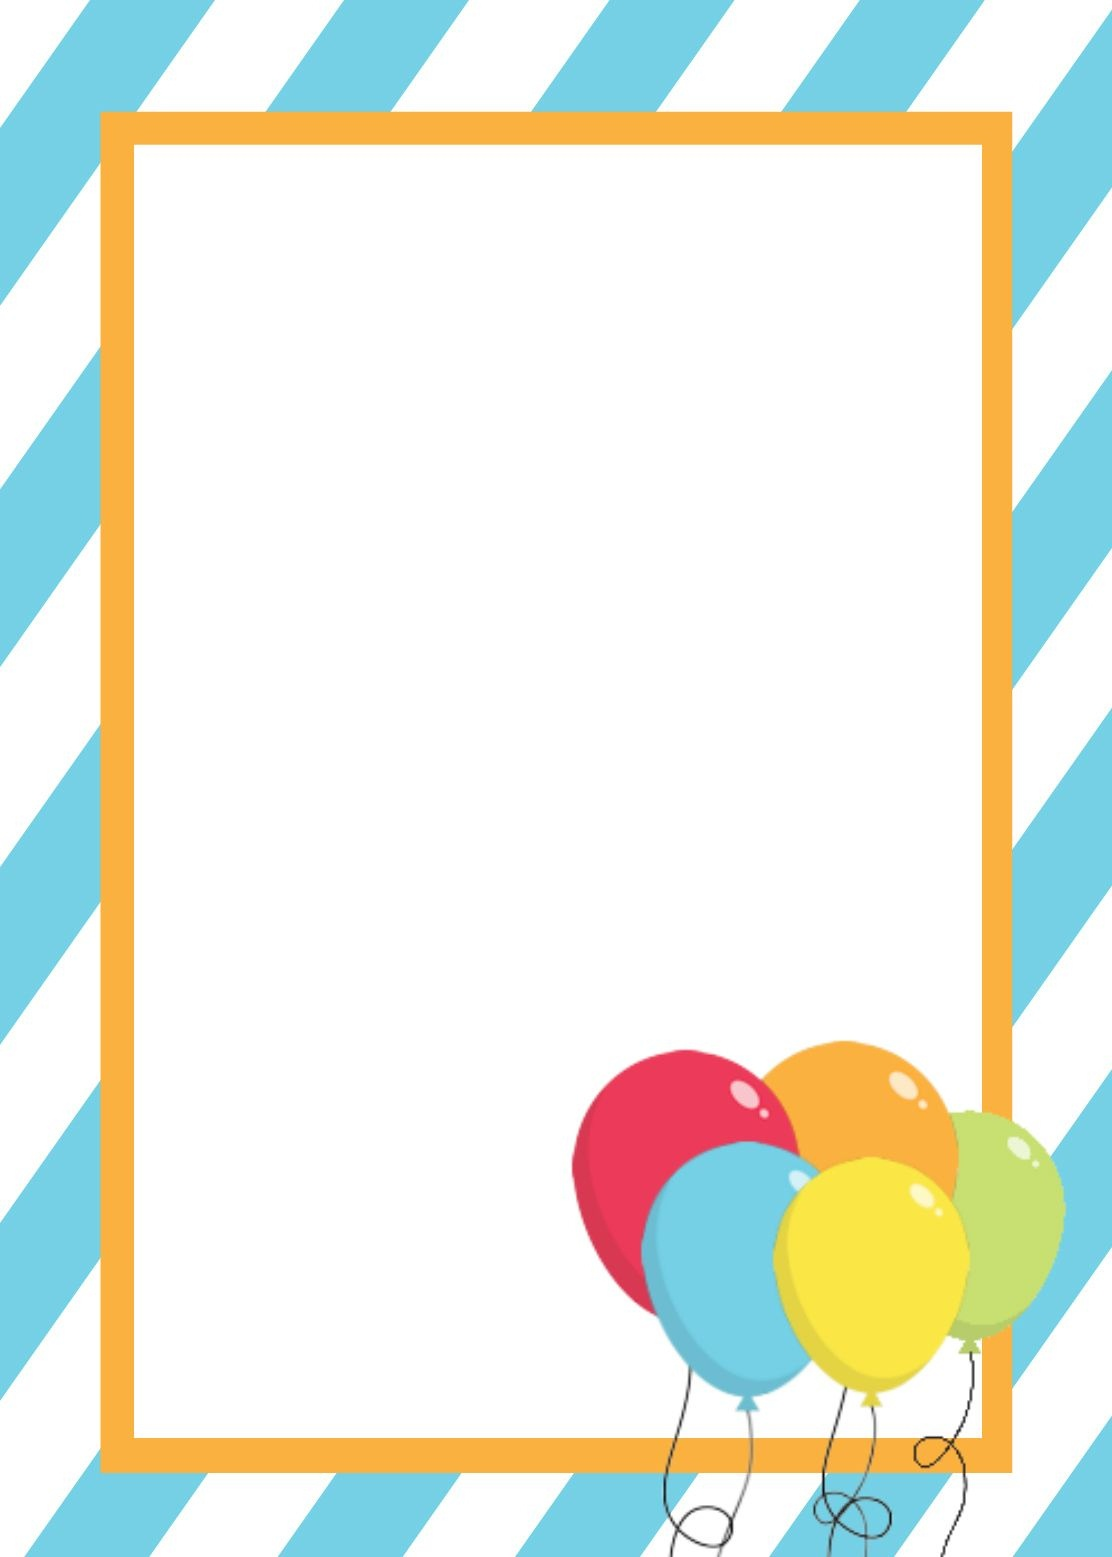 Free Printable Birthday Invitation Templates | Birthday Ideas And - Free Printable Party Invitations